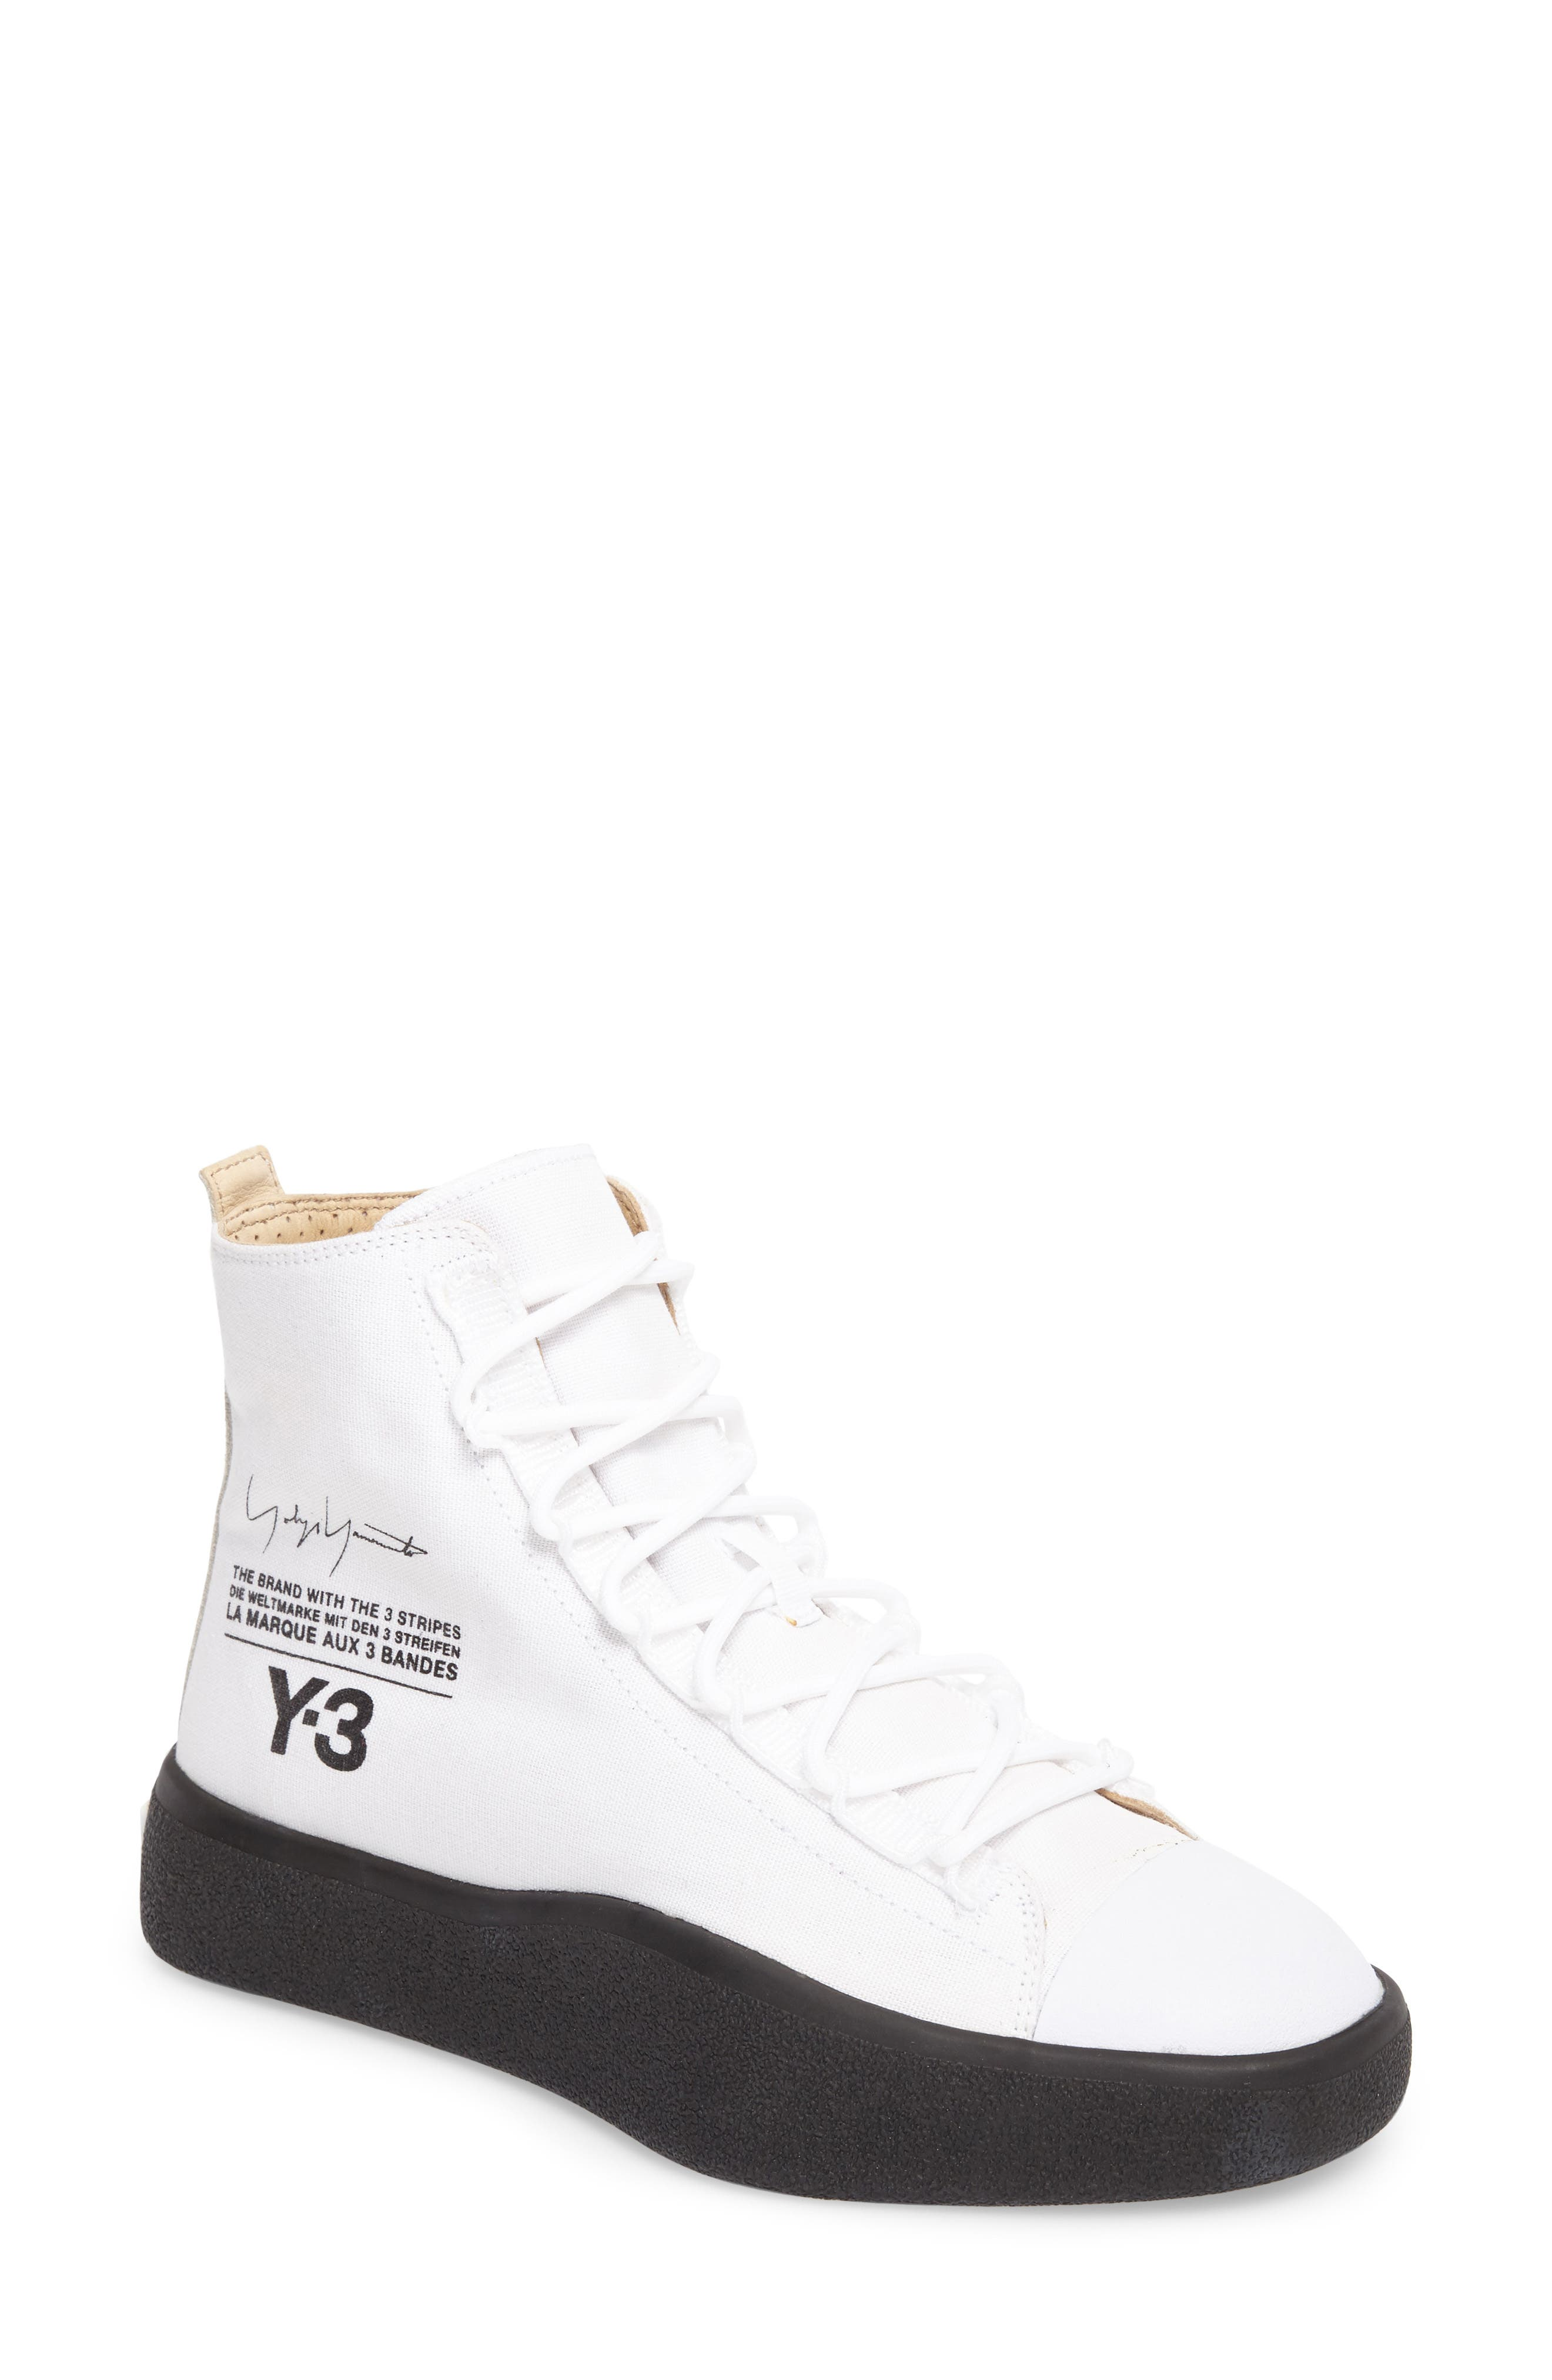 Bashyo High Top Sneaker,                         Main,                         color,